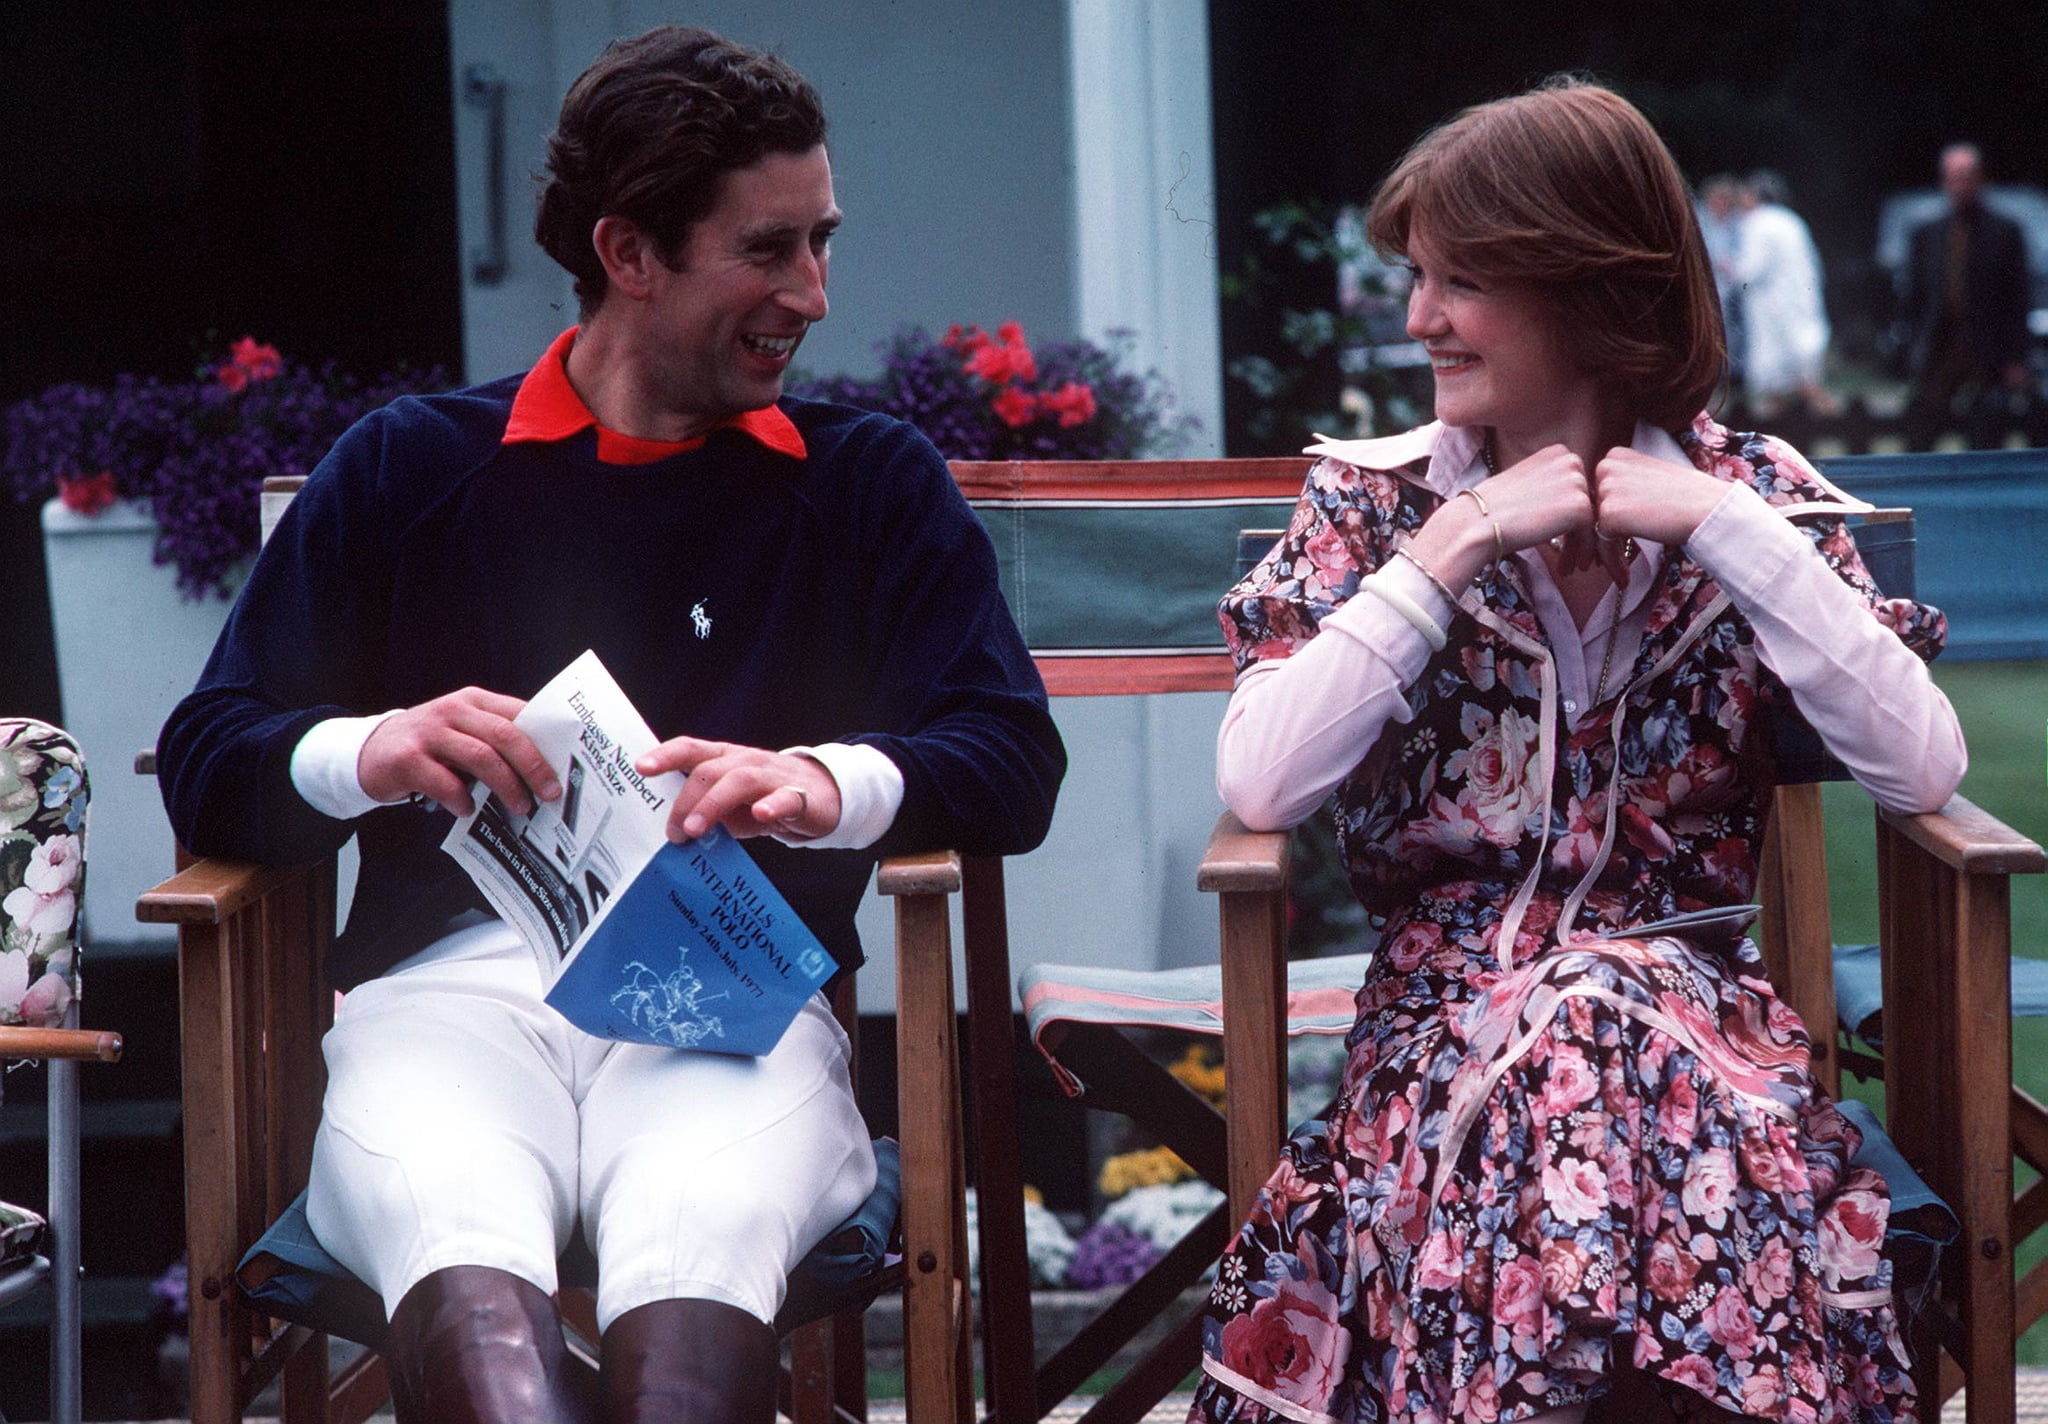 WINDSOR, UNITED KINGDOM - JULY 01:  Prince Charles Sitting Talking To Lady Sarah Spencer At A Polo Match At Guards Polo Club,smiths Lawn, Windsor Great Park (exact Date Not Certain)  (Photo by Tim Graham Photo Library via Getty Images)